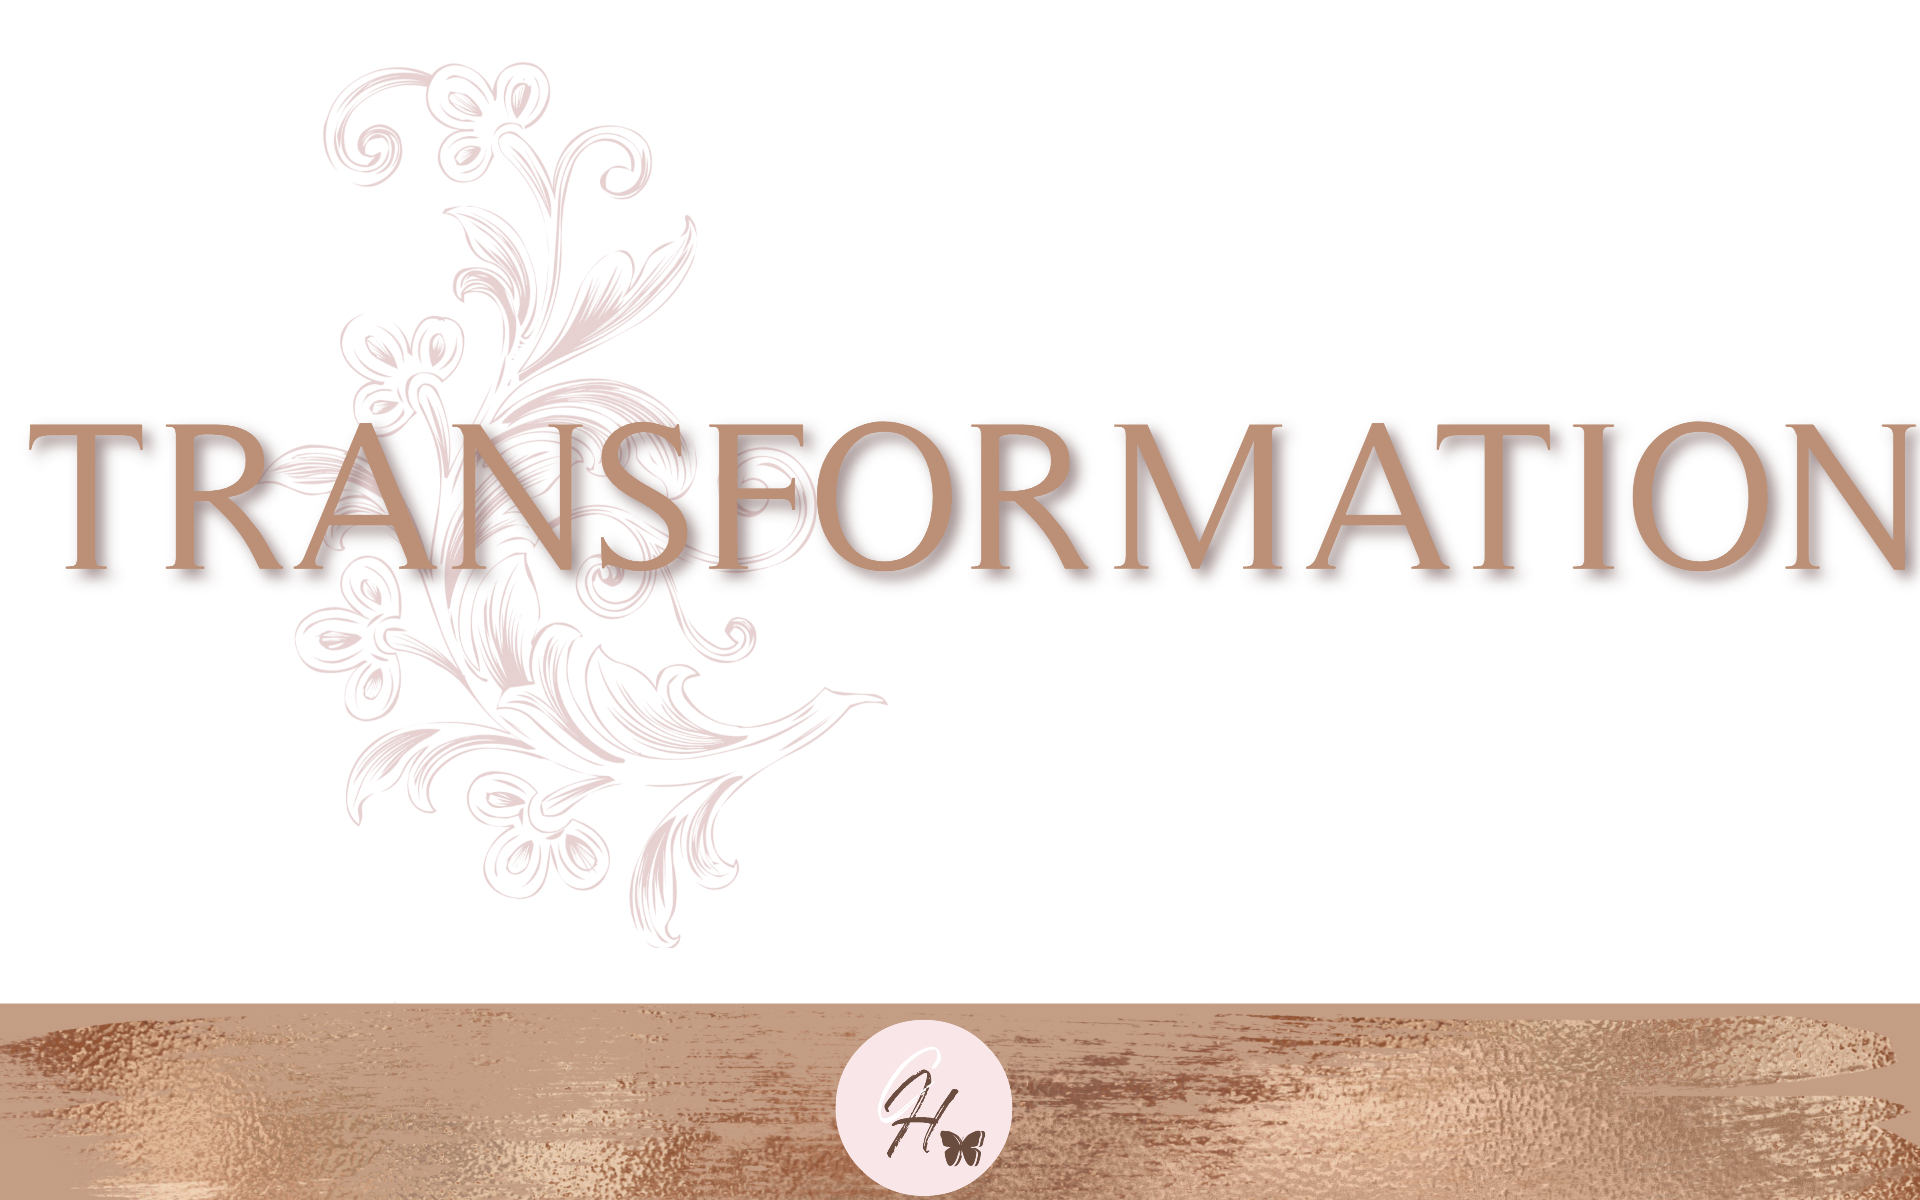 Transformation - Bible Study Guide